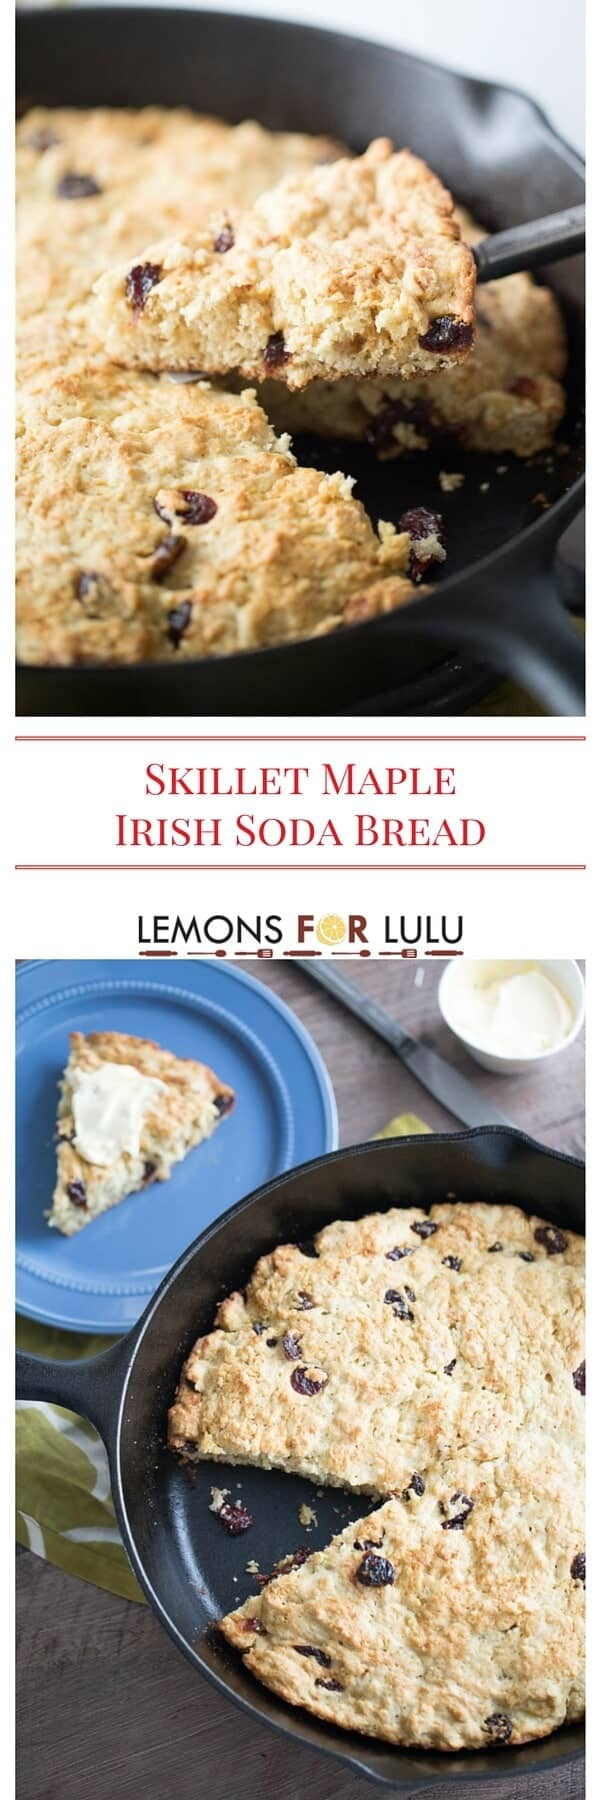 An easy Irish soda bread recipe made sweet with pure maple syrup and dried cherries. This bread recipe is quick and easy and is perfect for breakfast, on the side or as an afternoon snack!